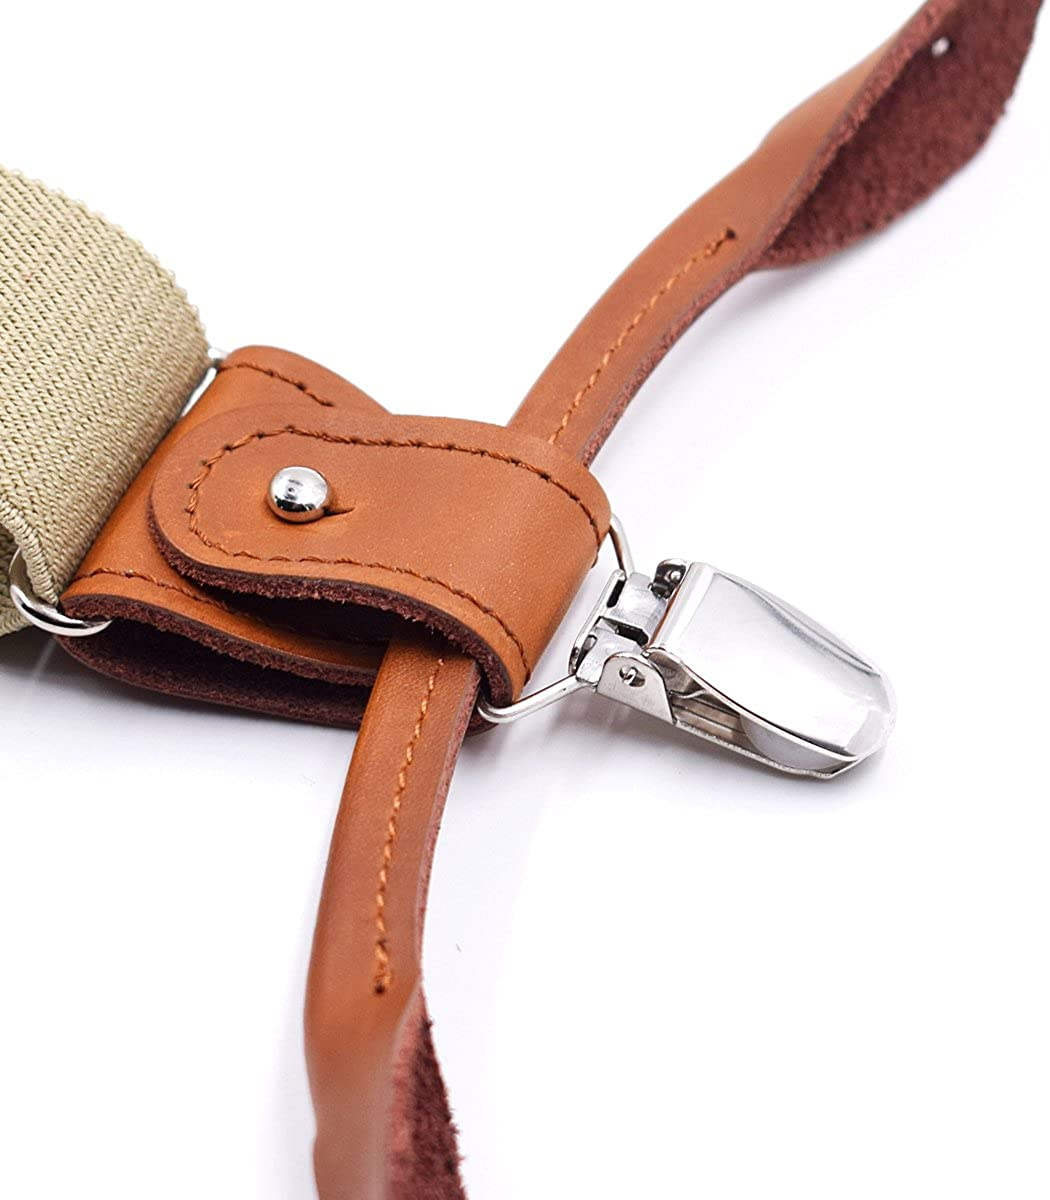 Mens Braces Button End Heavy Duty Adjustable Elastic Straps Khaki KNMY Y-Back Strong Clips /& Leather Button Suspenders